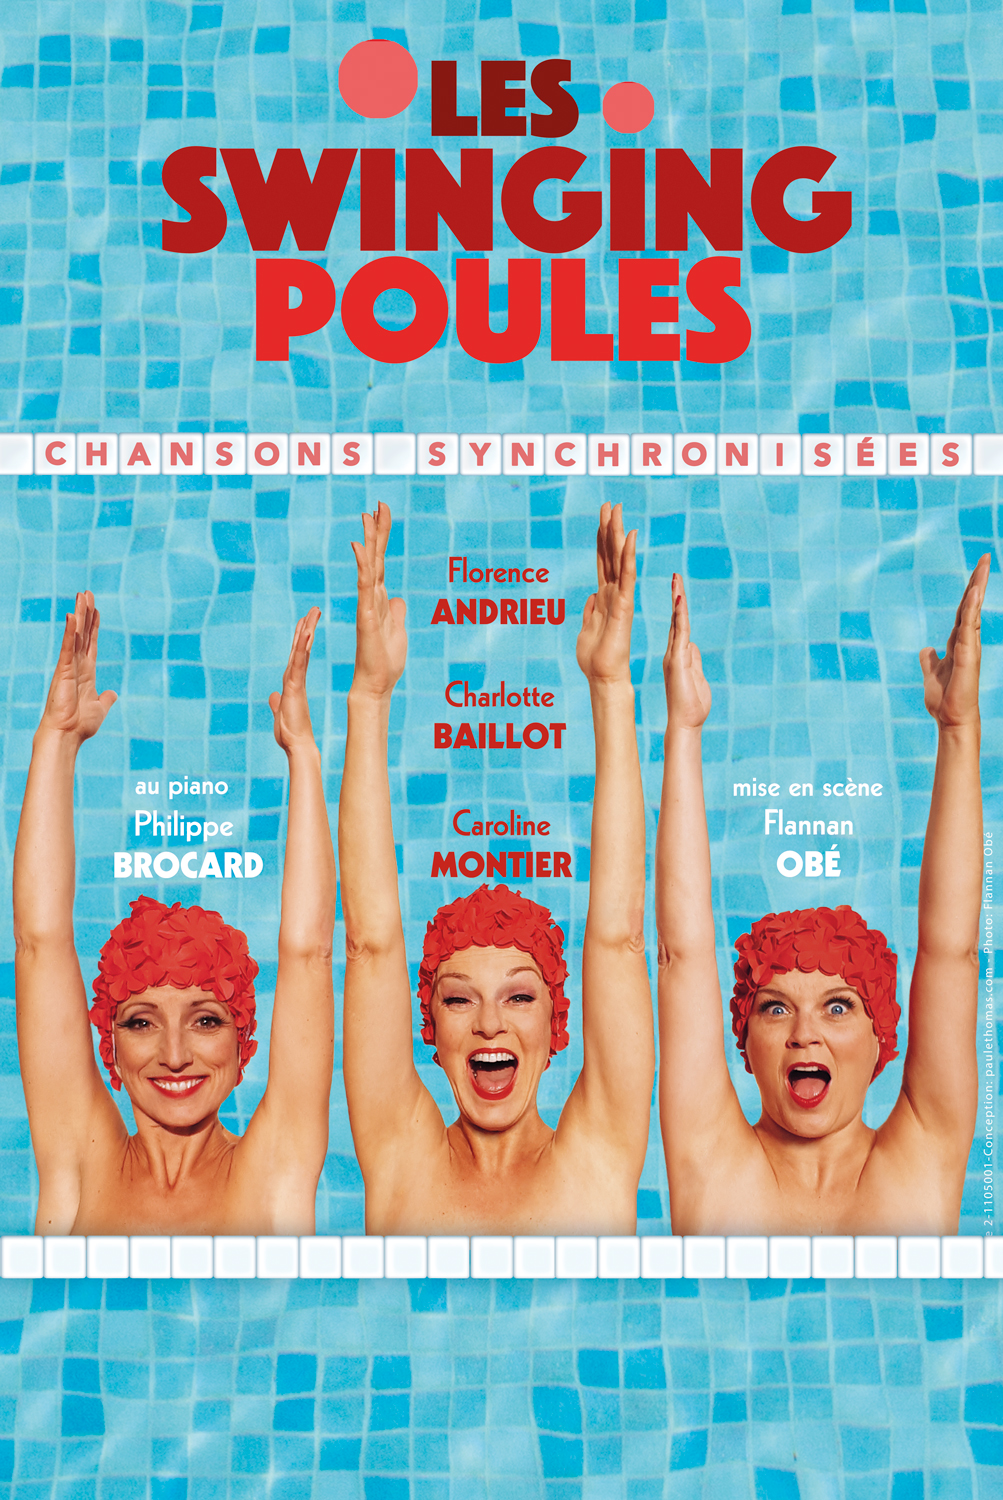 Chansons synchronisées